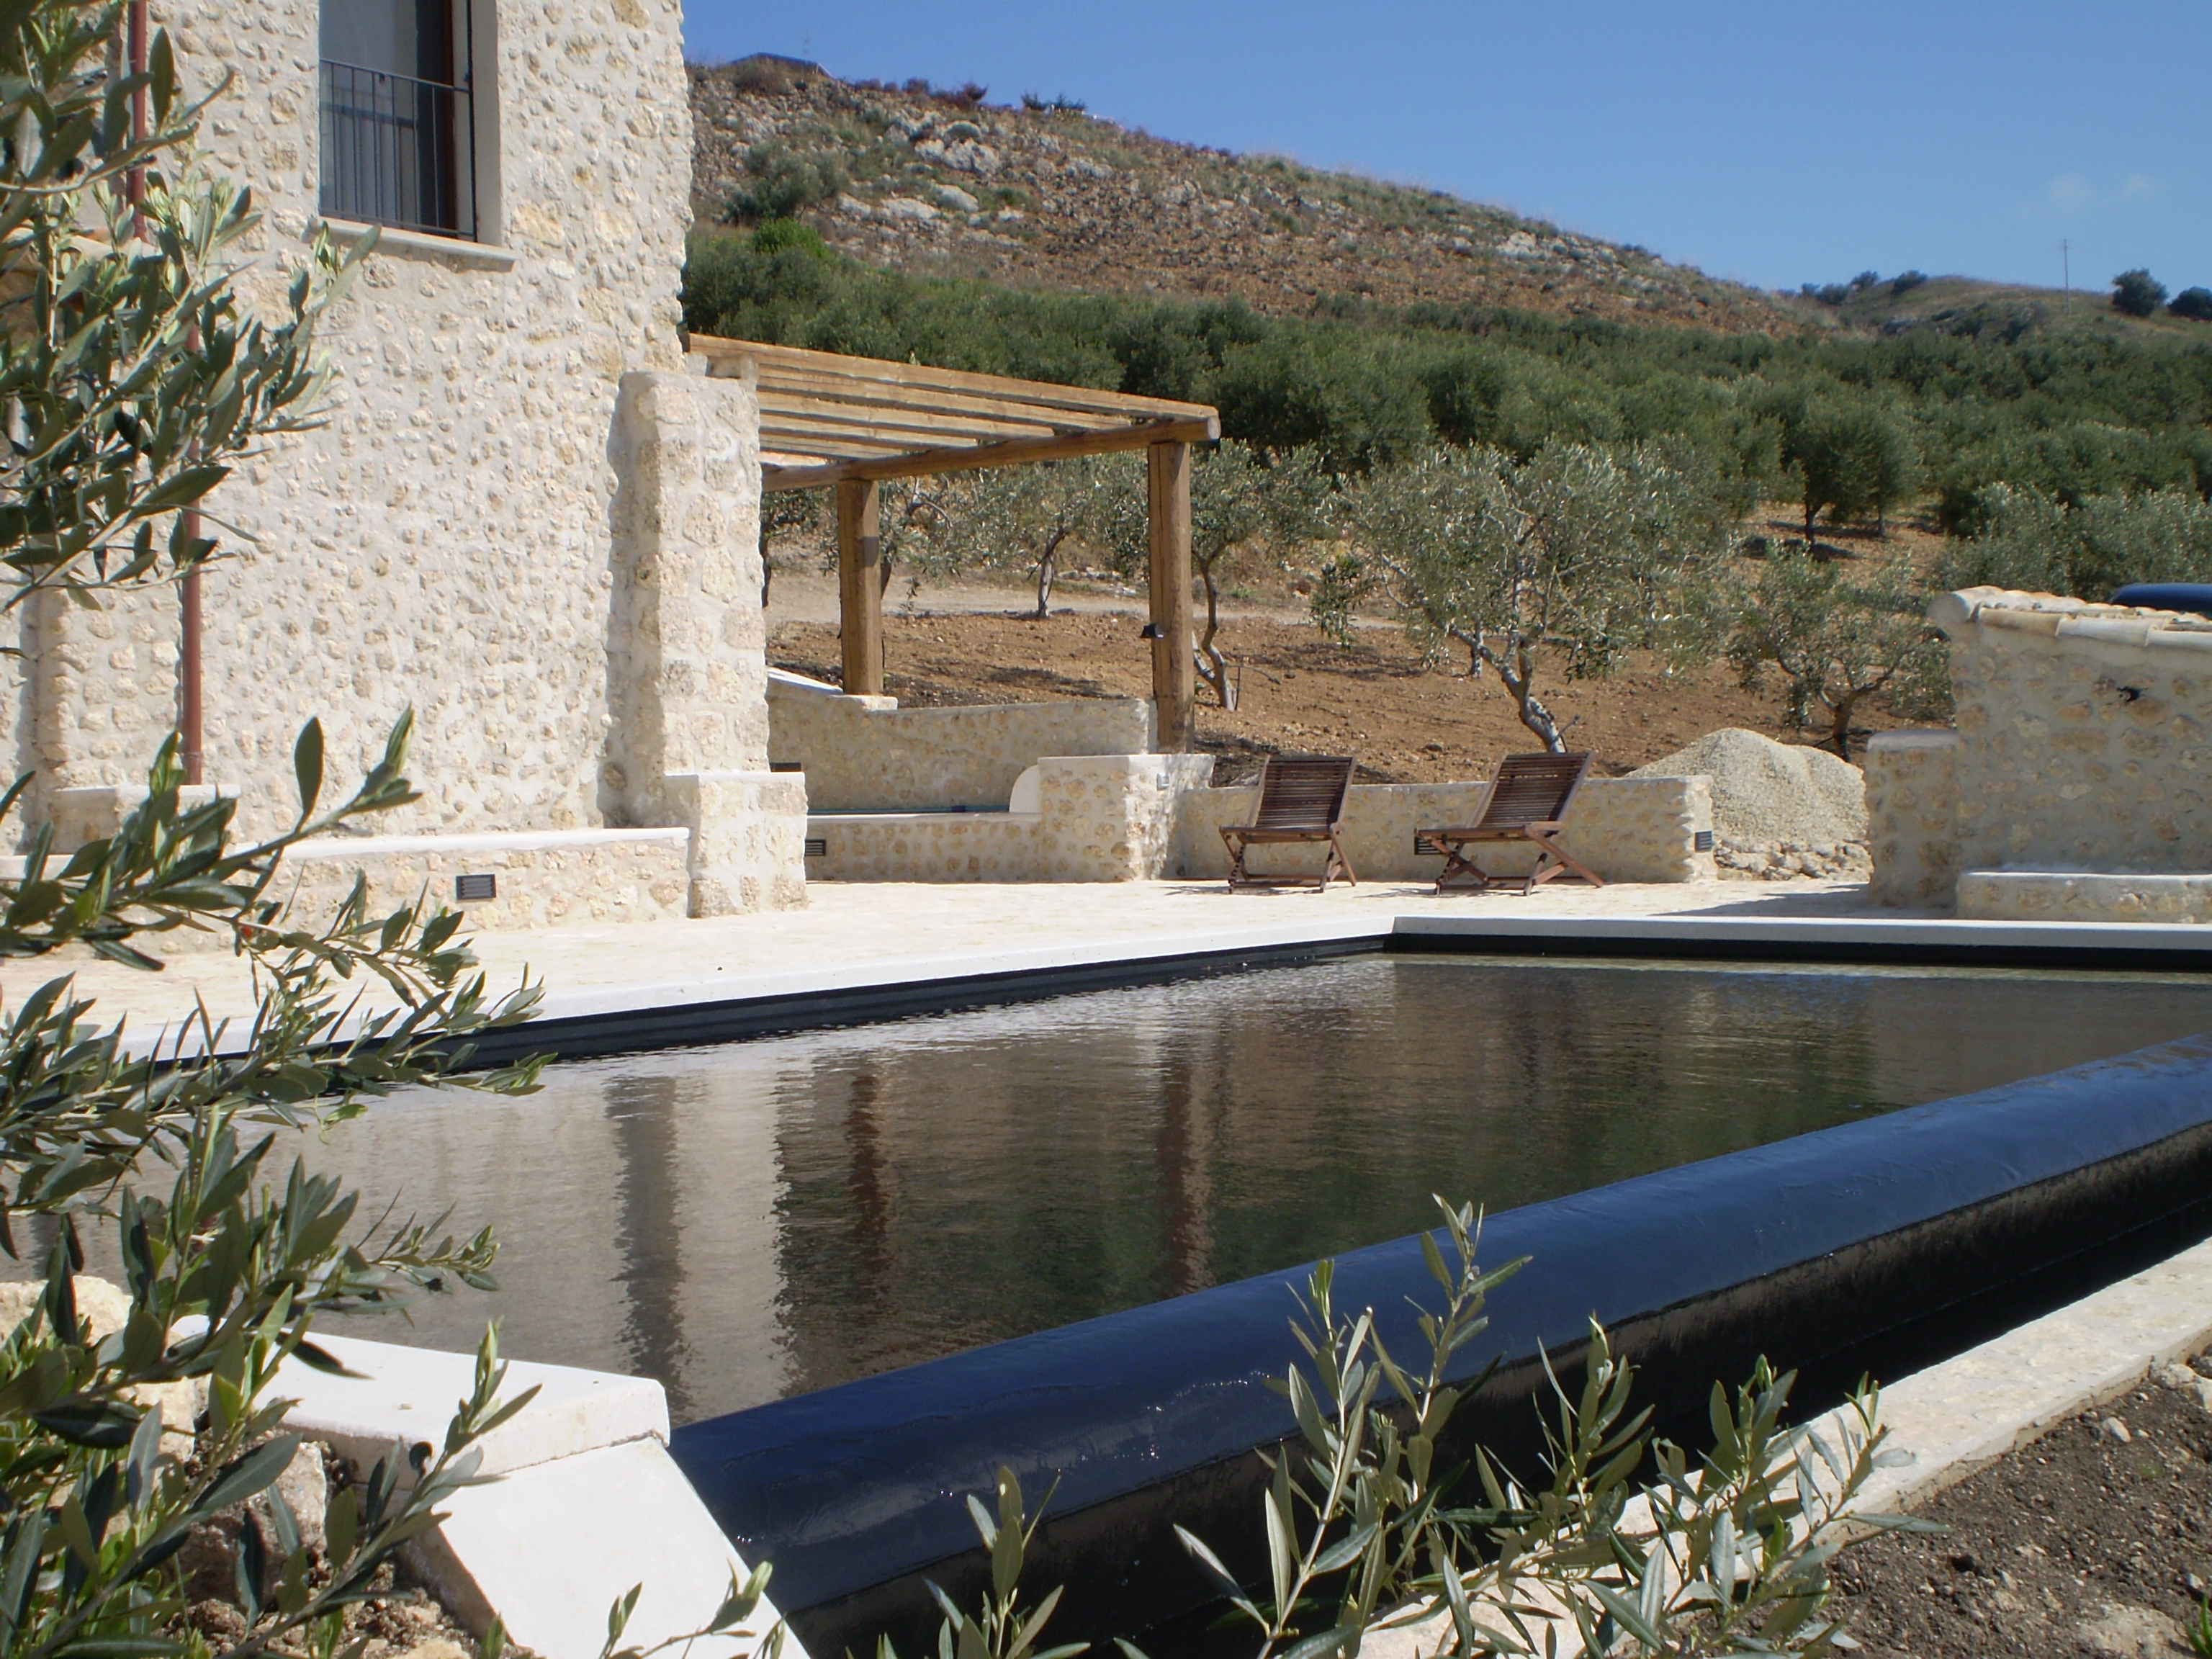 RS Piscine in Sicilia  Piscine Scenografiche - RS Piscine in Sicilia